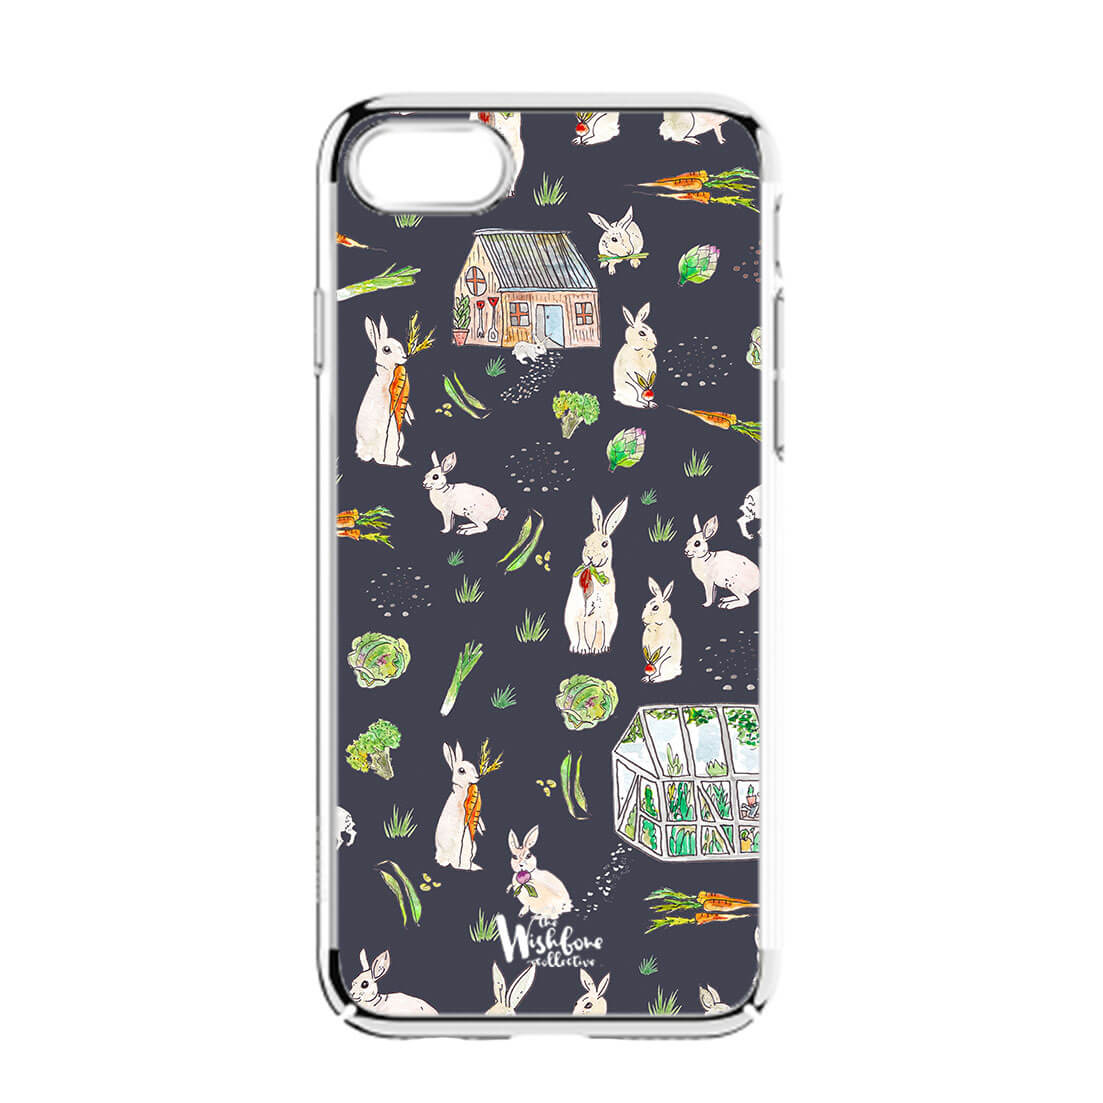 forraging-rabbits-iphone-case